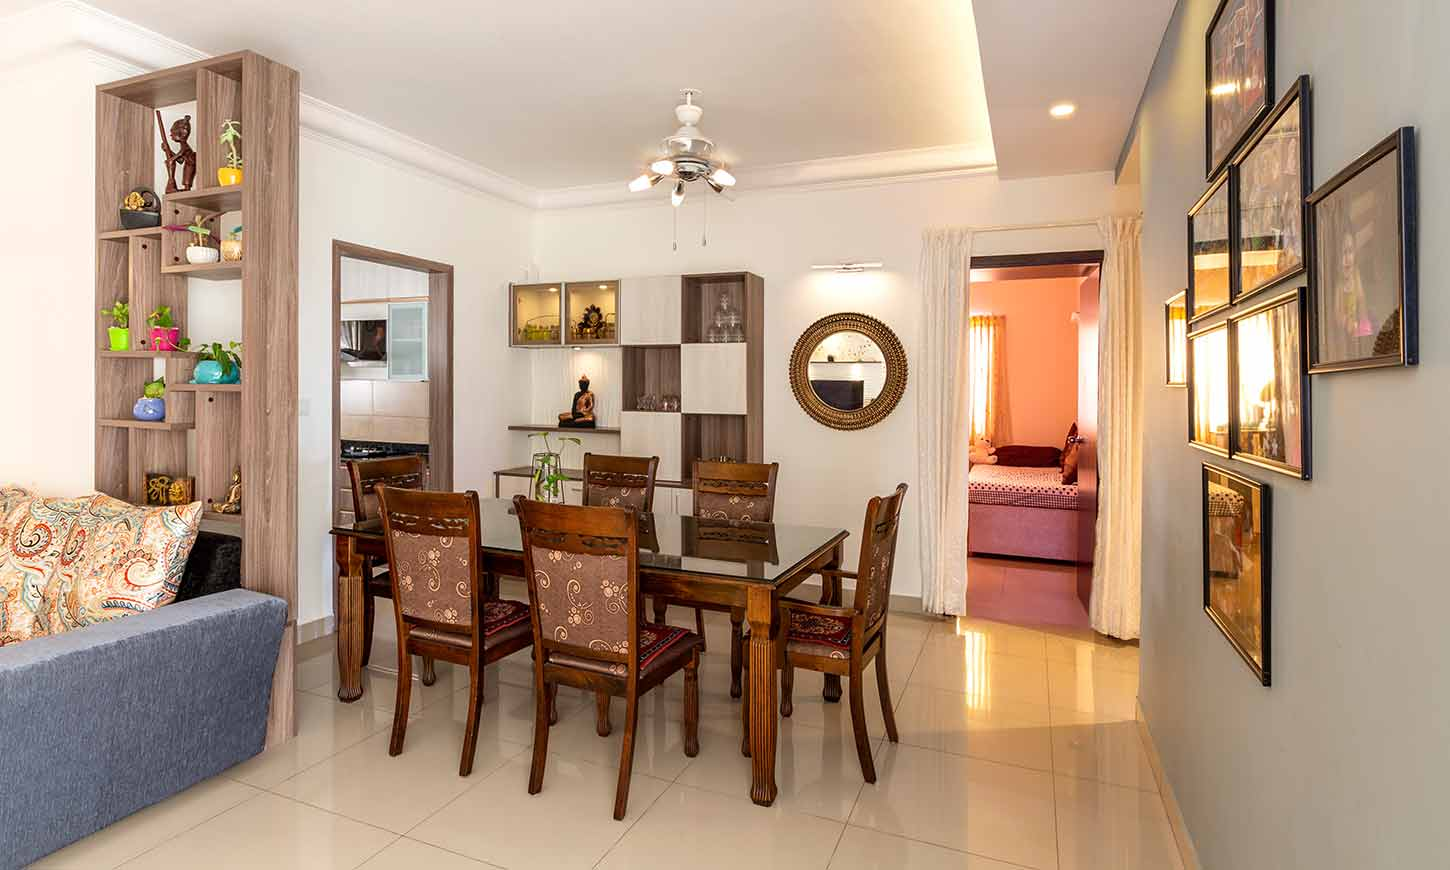 Dining room designed by top interior designers and decorators in bangalore